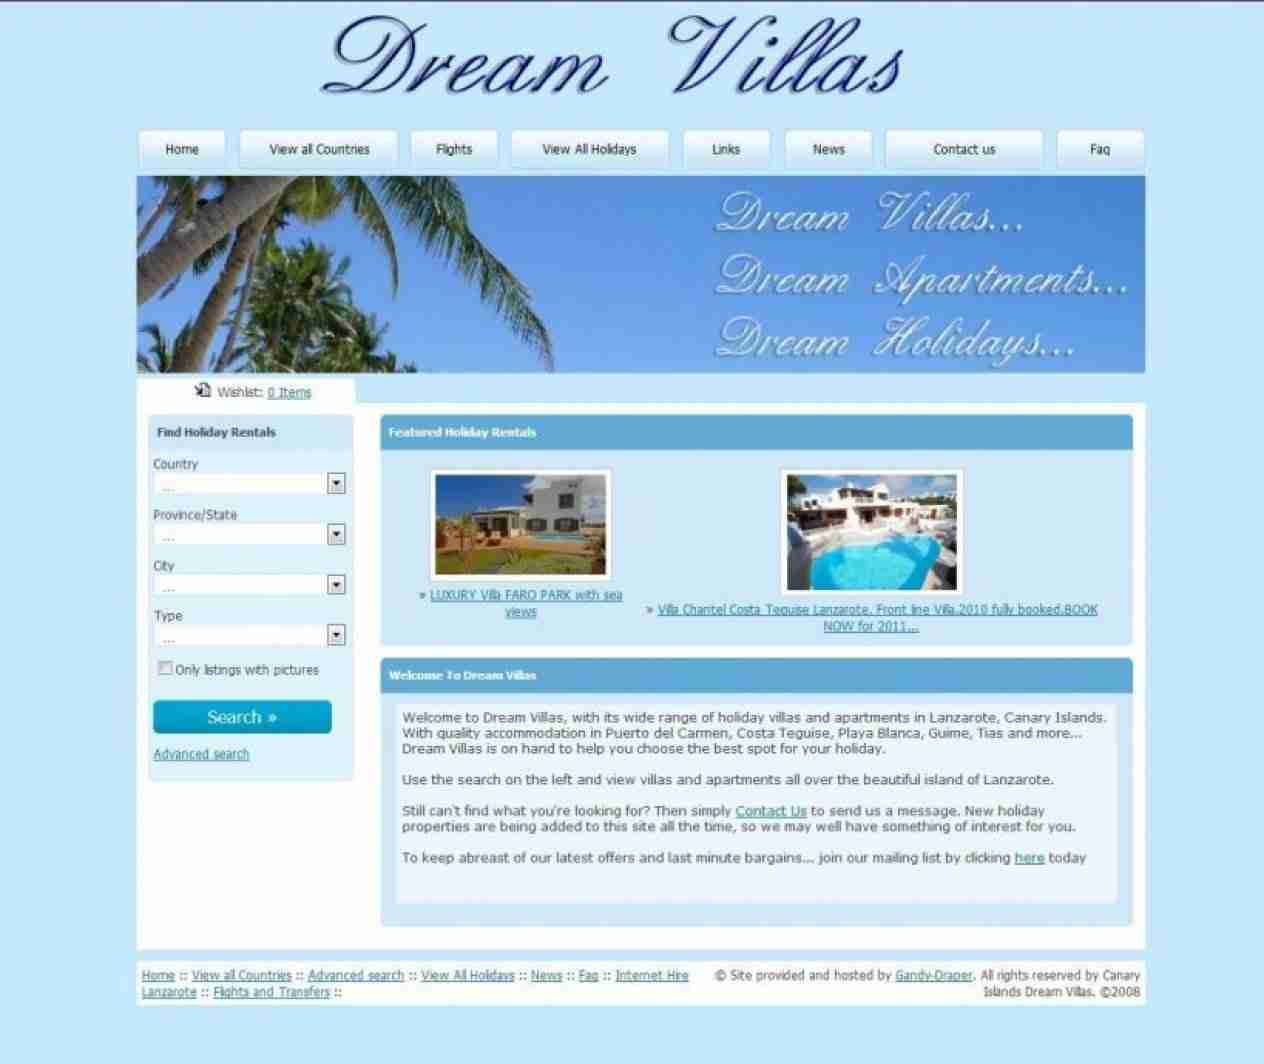 Canary Islands Dream Villas